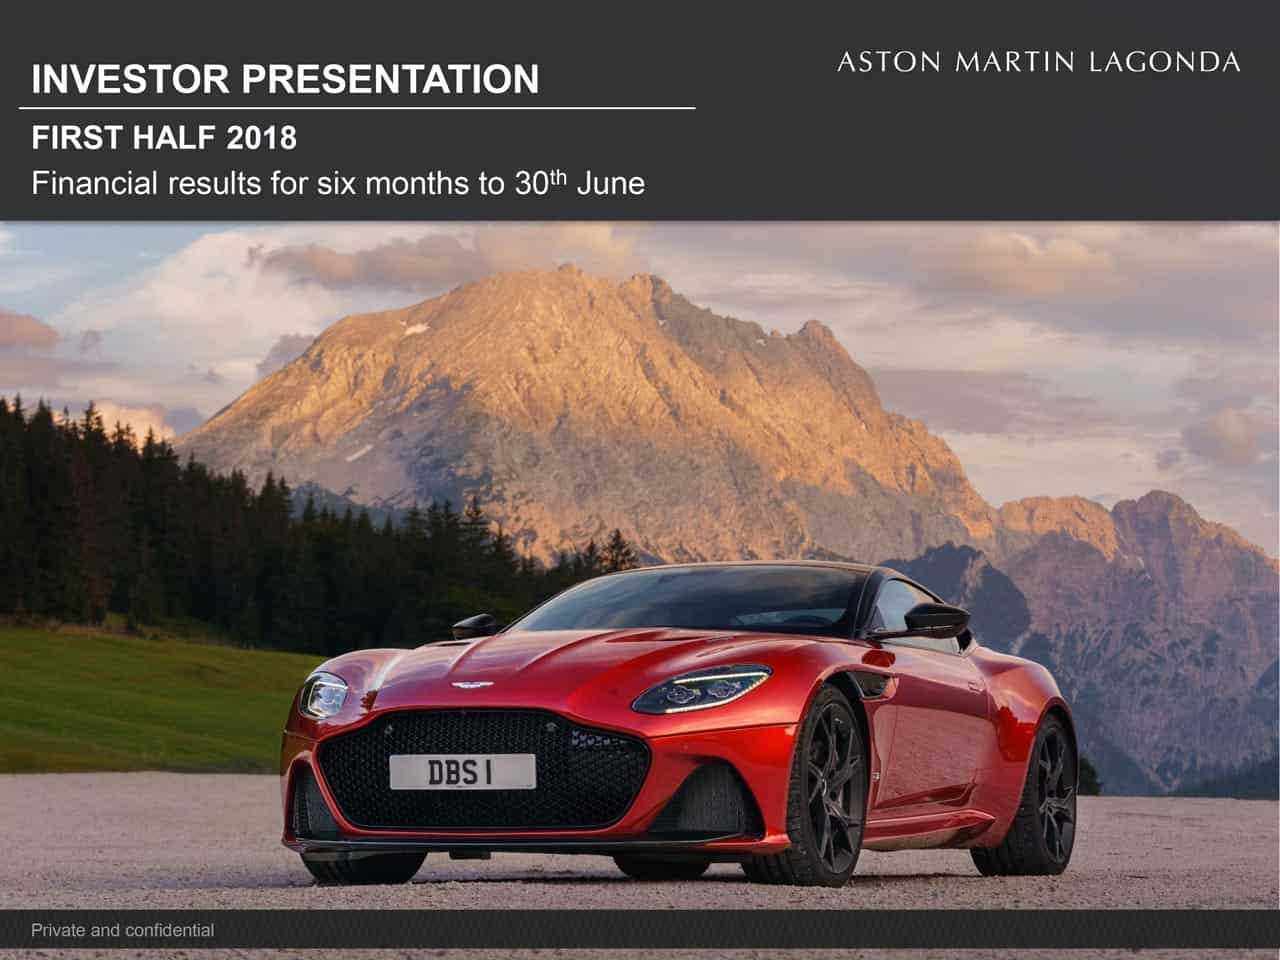 The Aston Martin Ipo How 007 Glamour Blinded Gullible Investors Undervalued Shares